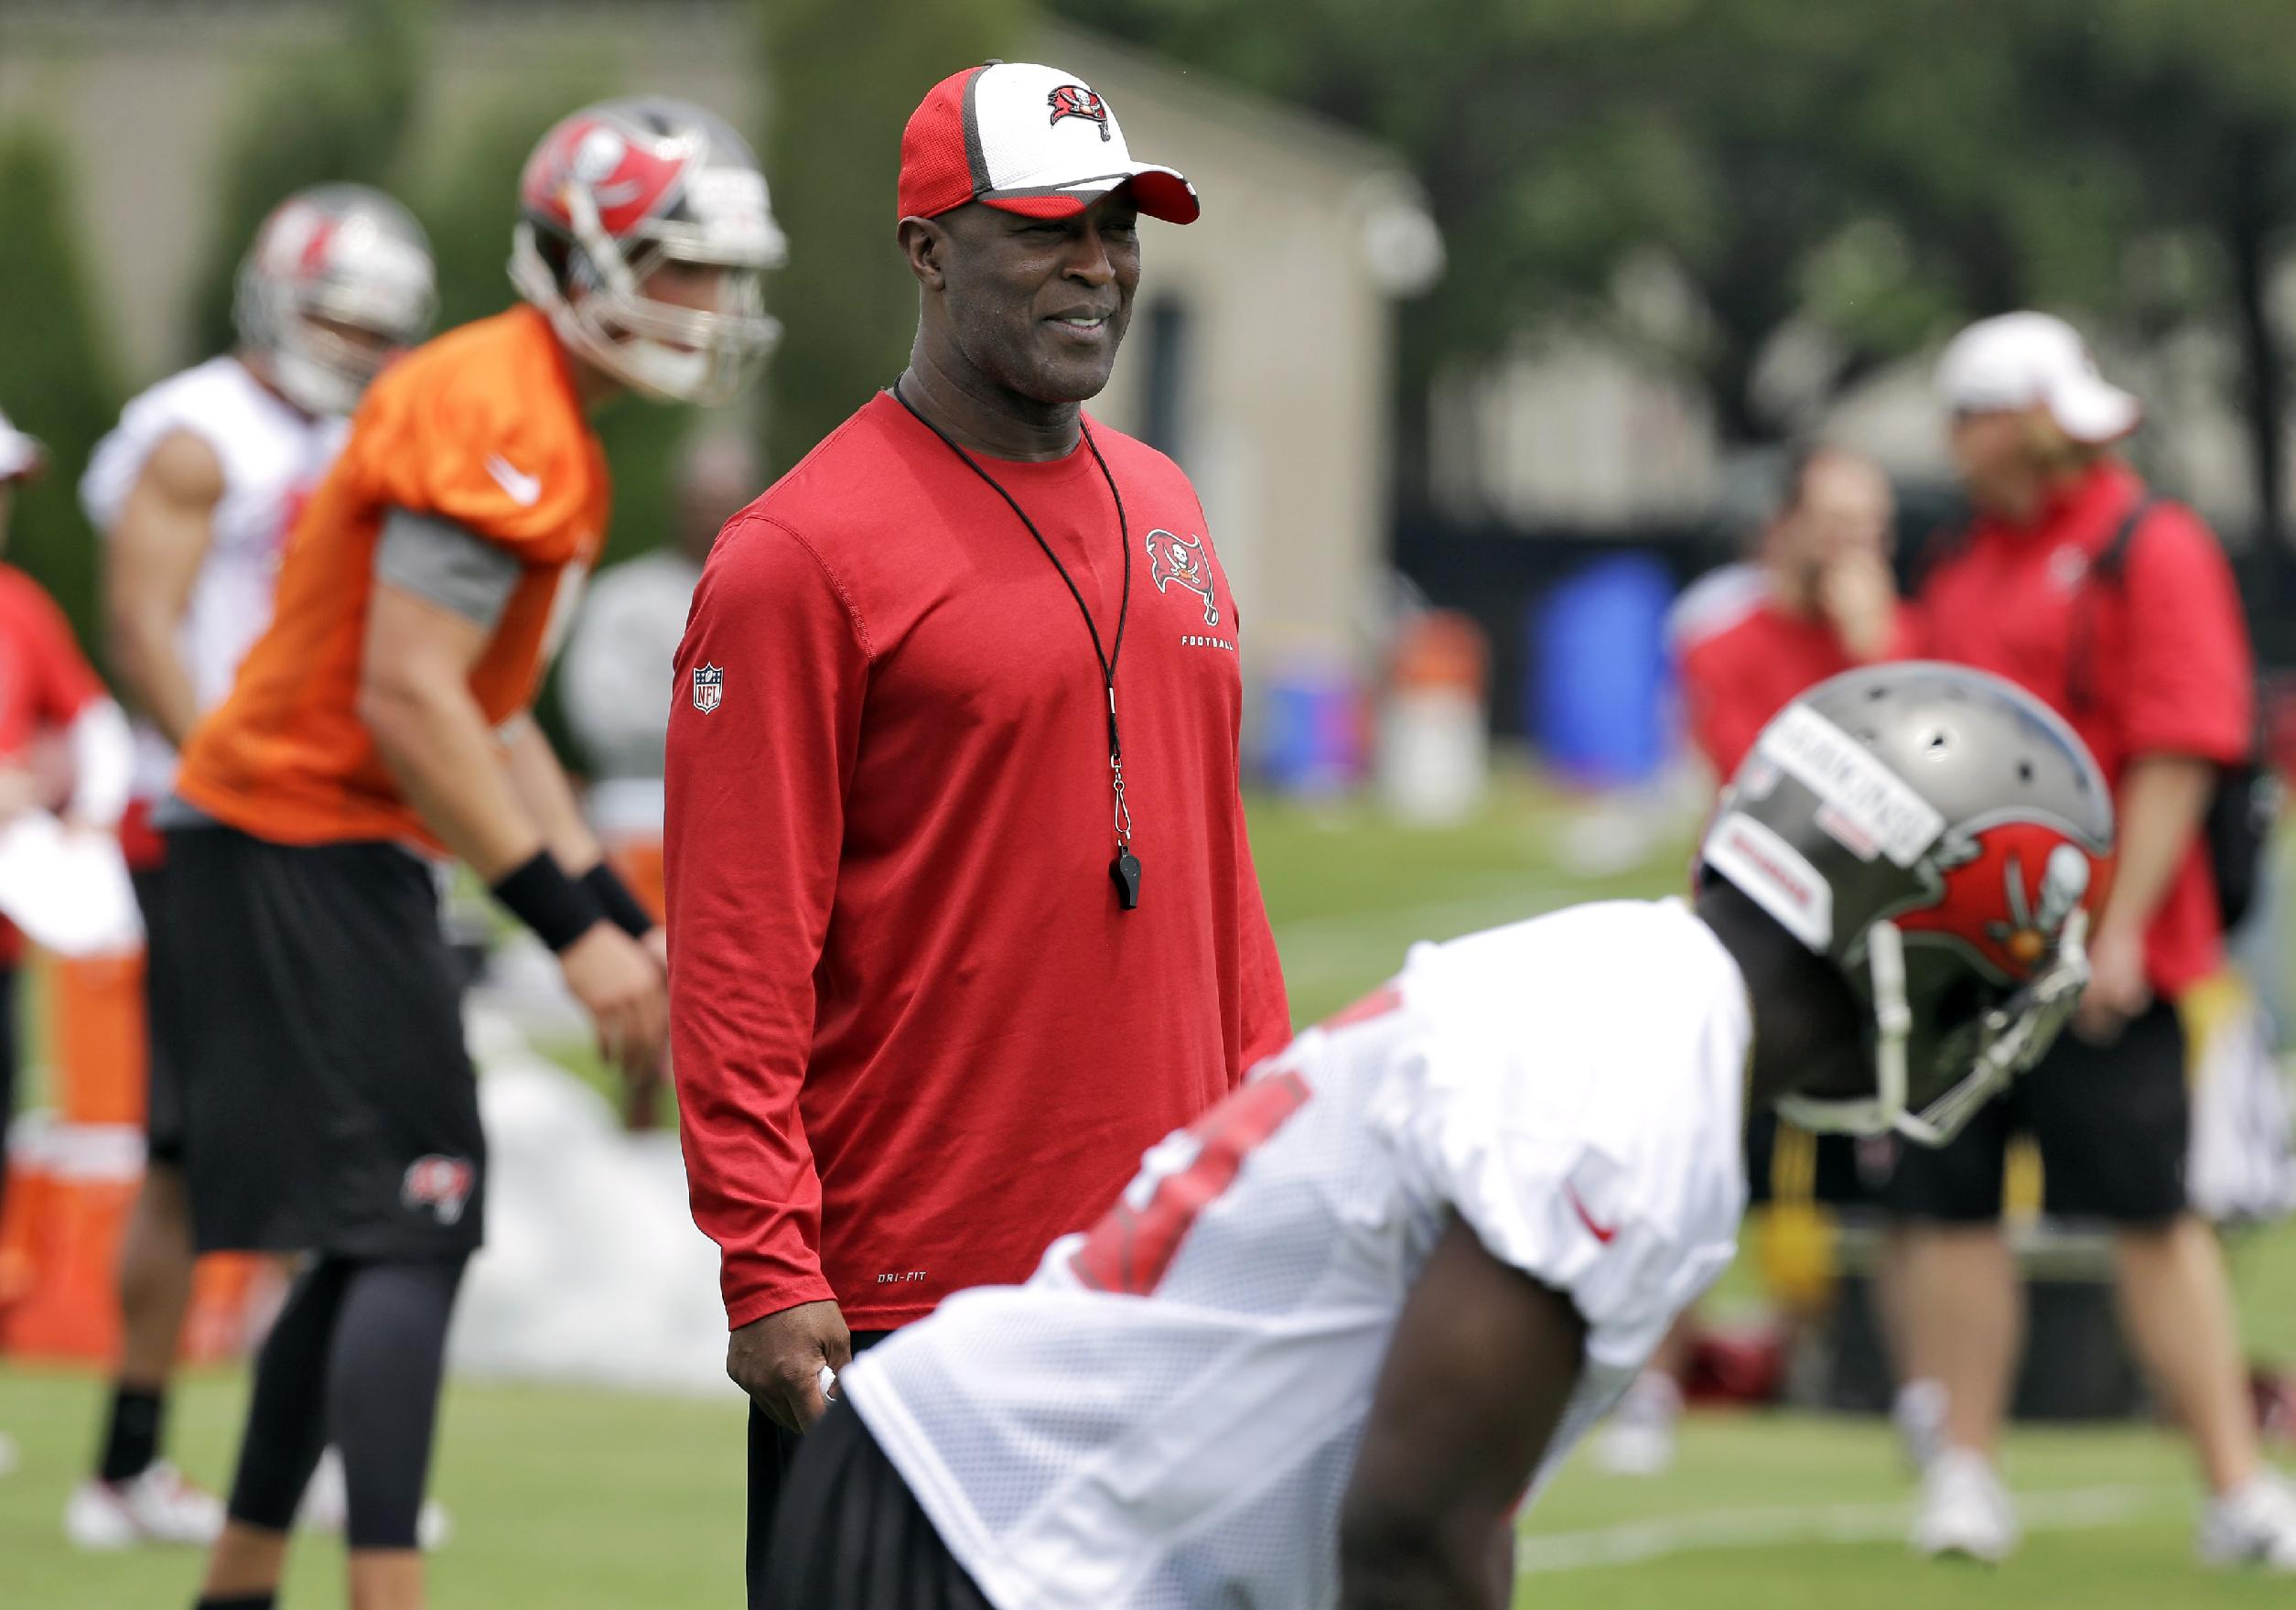 New Tampa Bay Buccaneers head coach Lovie Smith, center, stands during voluntary minicamp football practice Tuesday, April 22, 2014, in Tampa, Fla